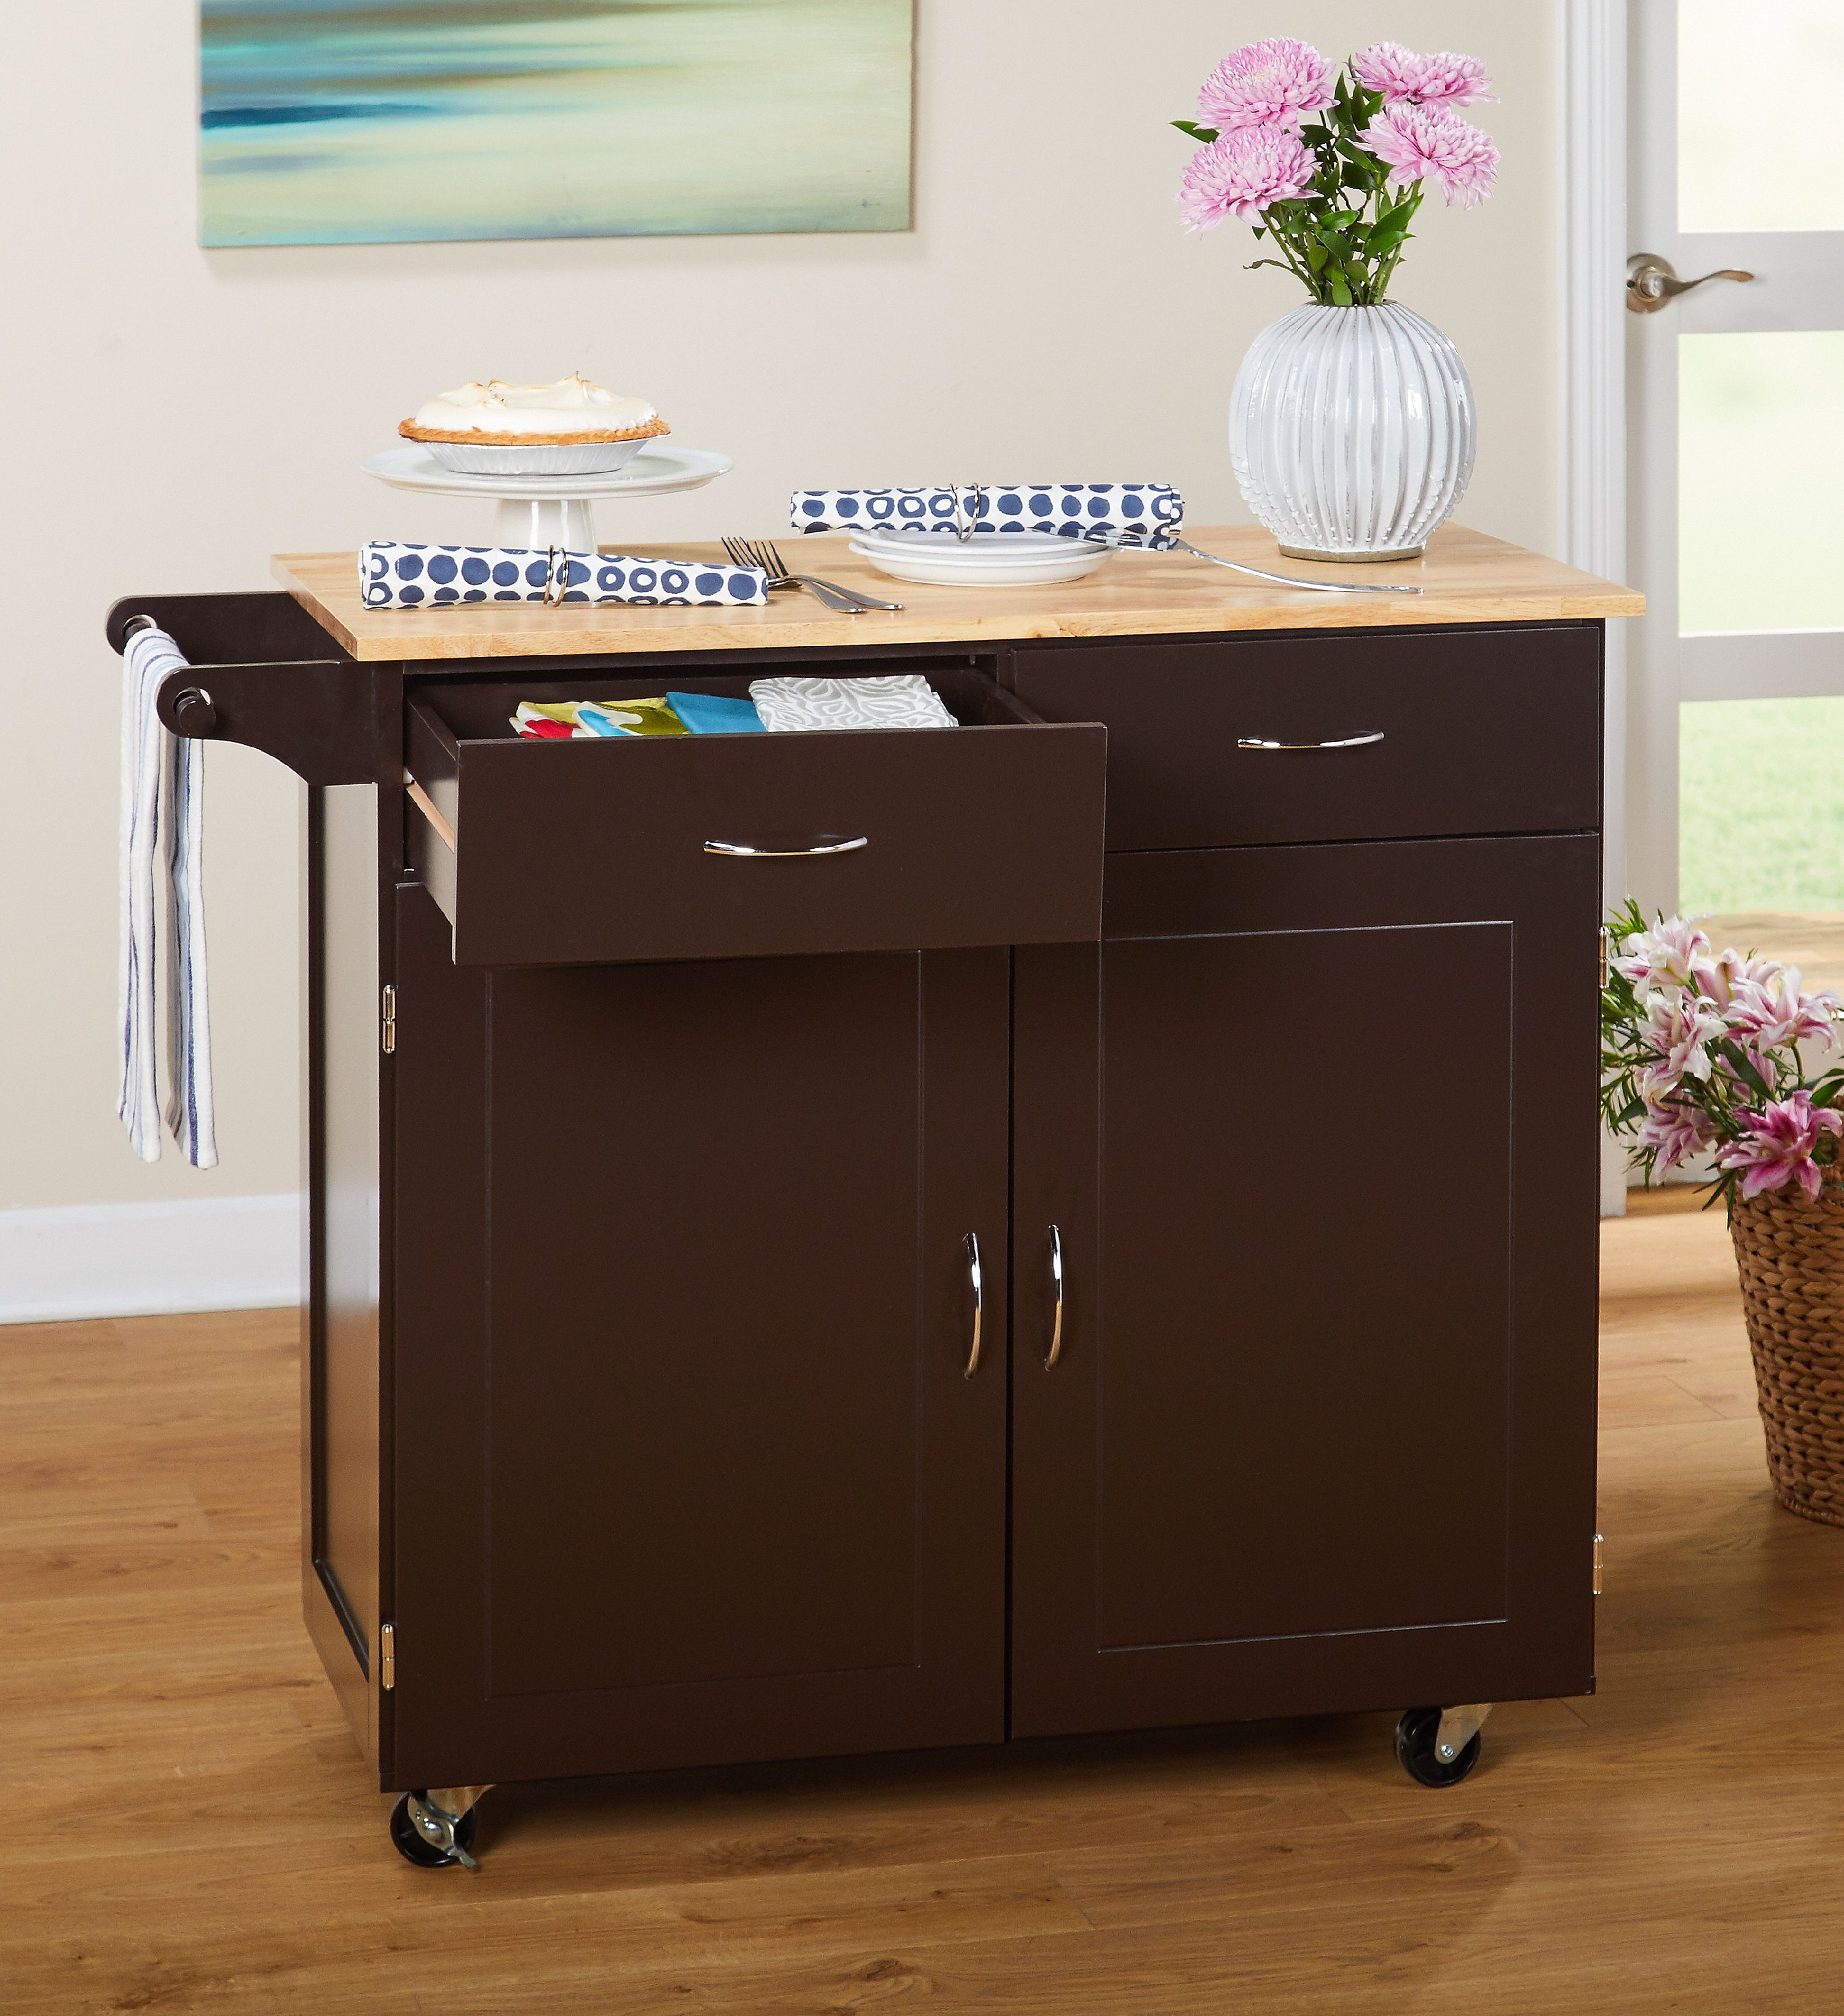 Large Kitchen Cart With Rubberwood Top, Multiple Finishes Image 3